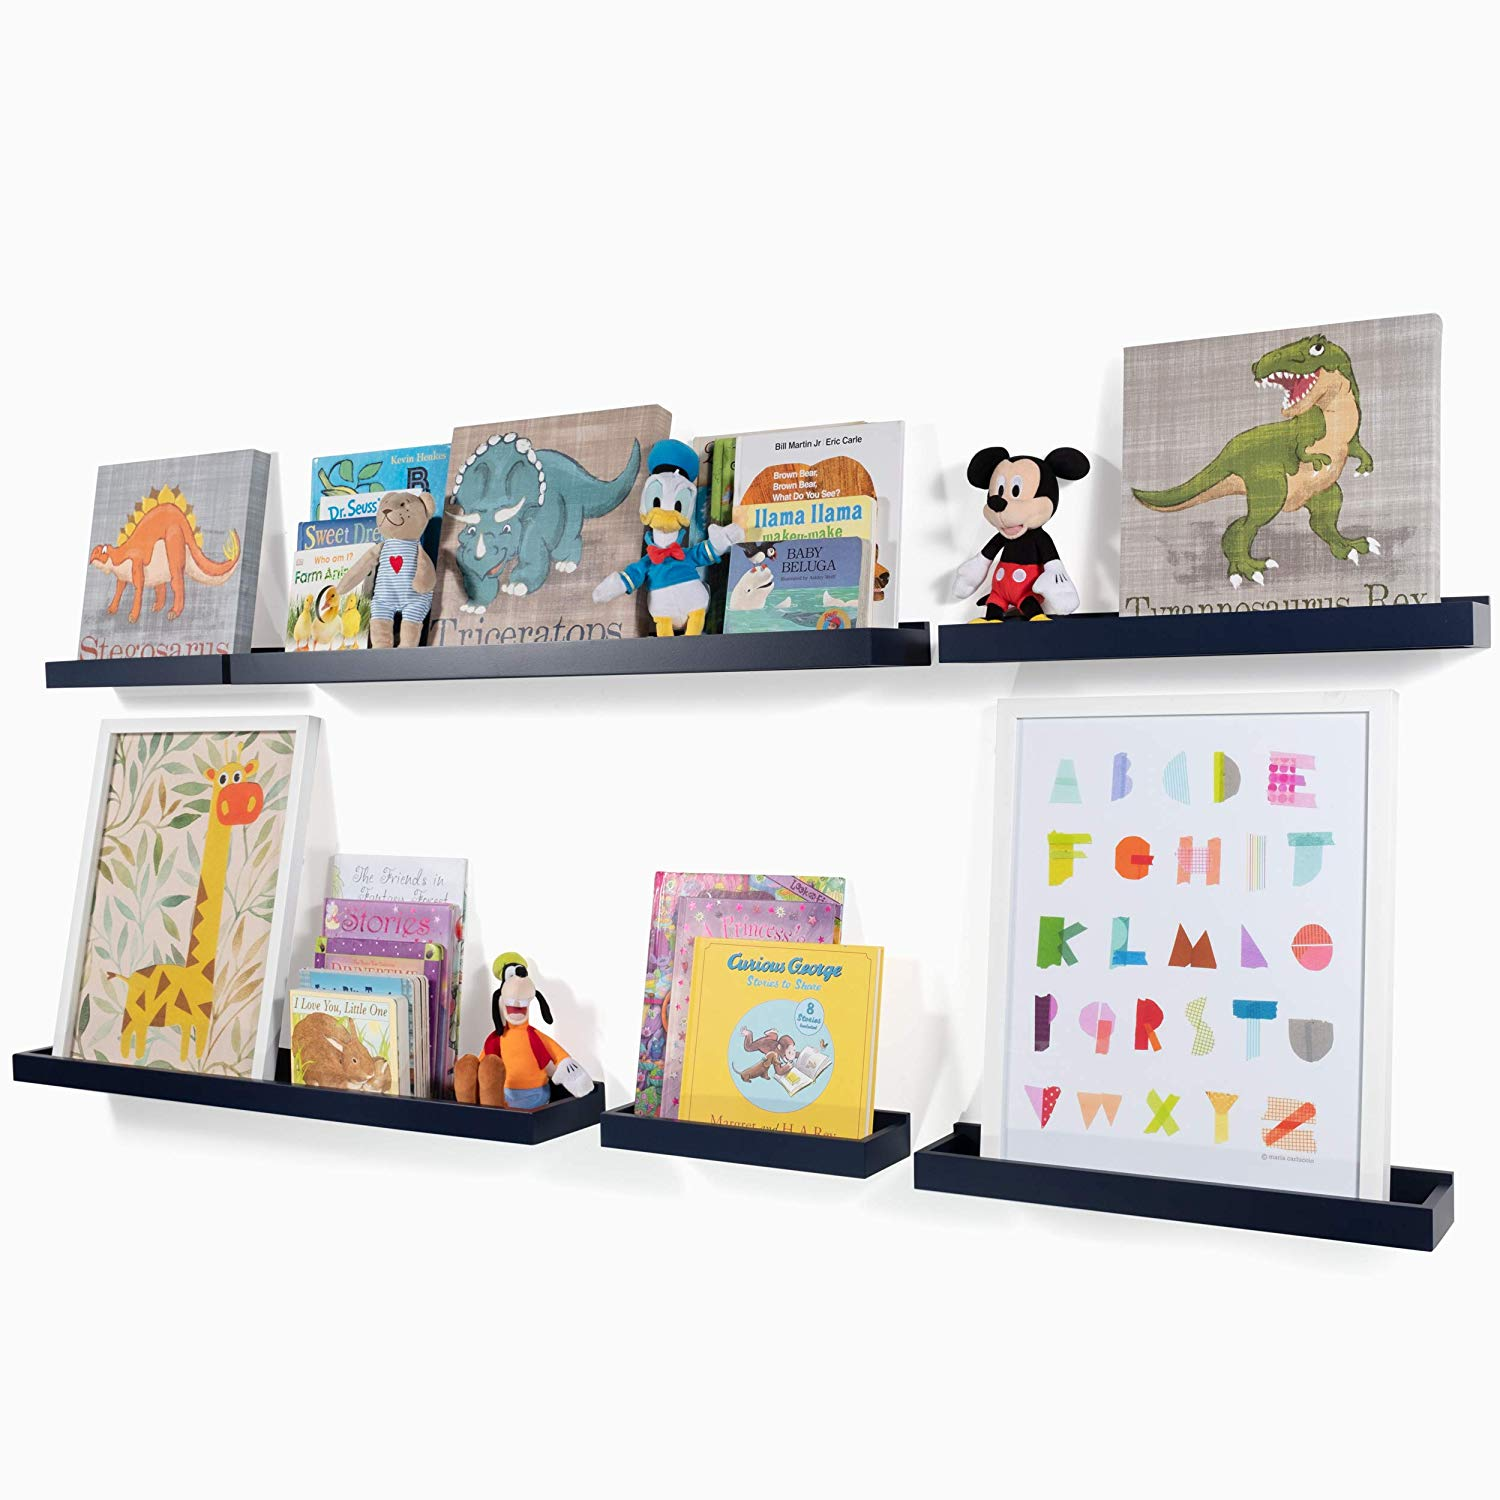 wallniture philly varying sizes floating shelves trays kgwl bookshelves nursery and display modern wood shelving units for kids bedroom navy home bunnings cube unit office desk